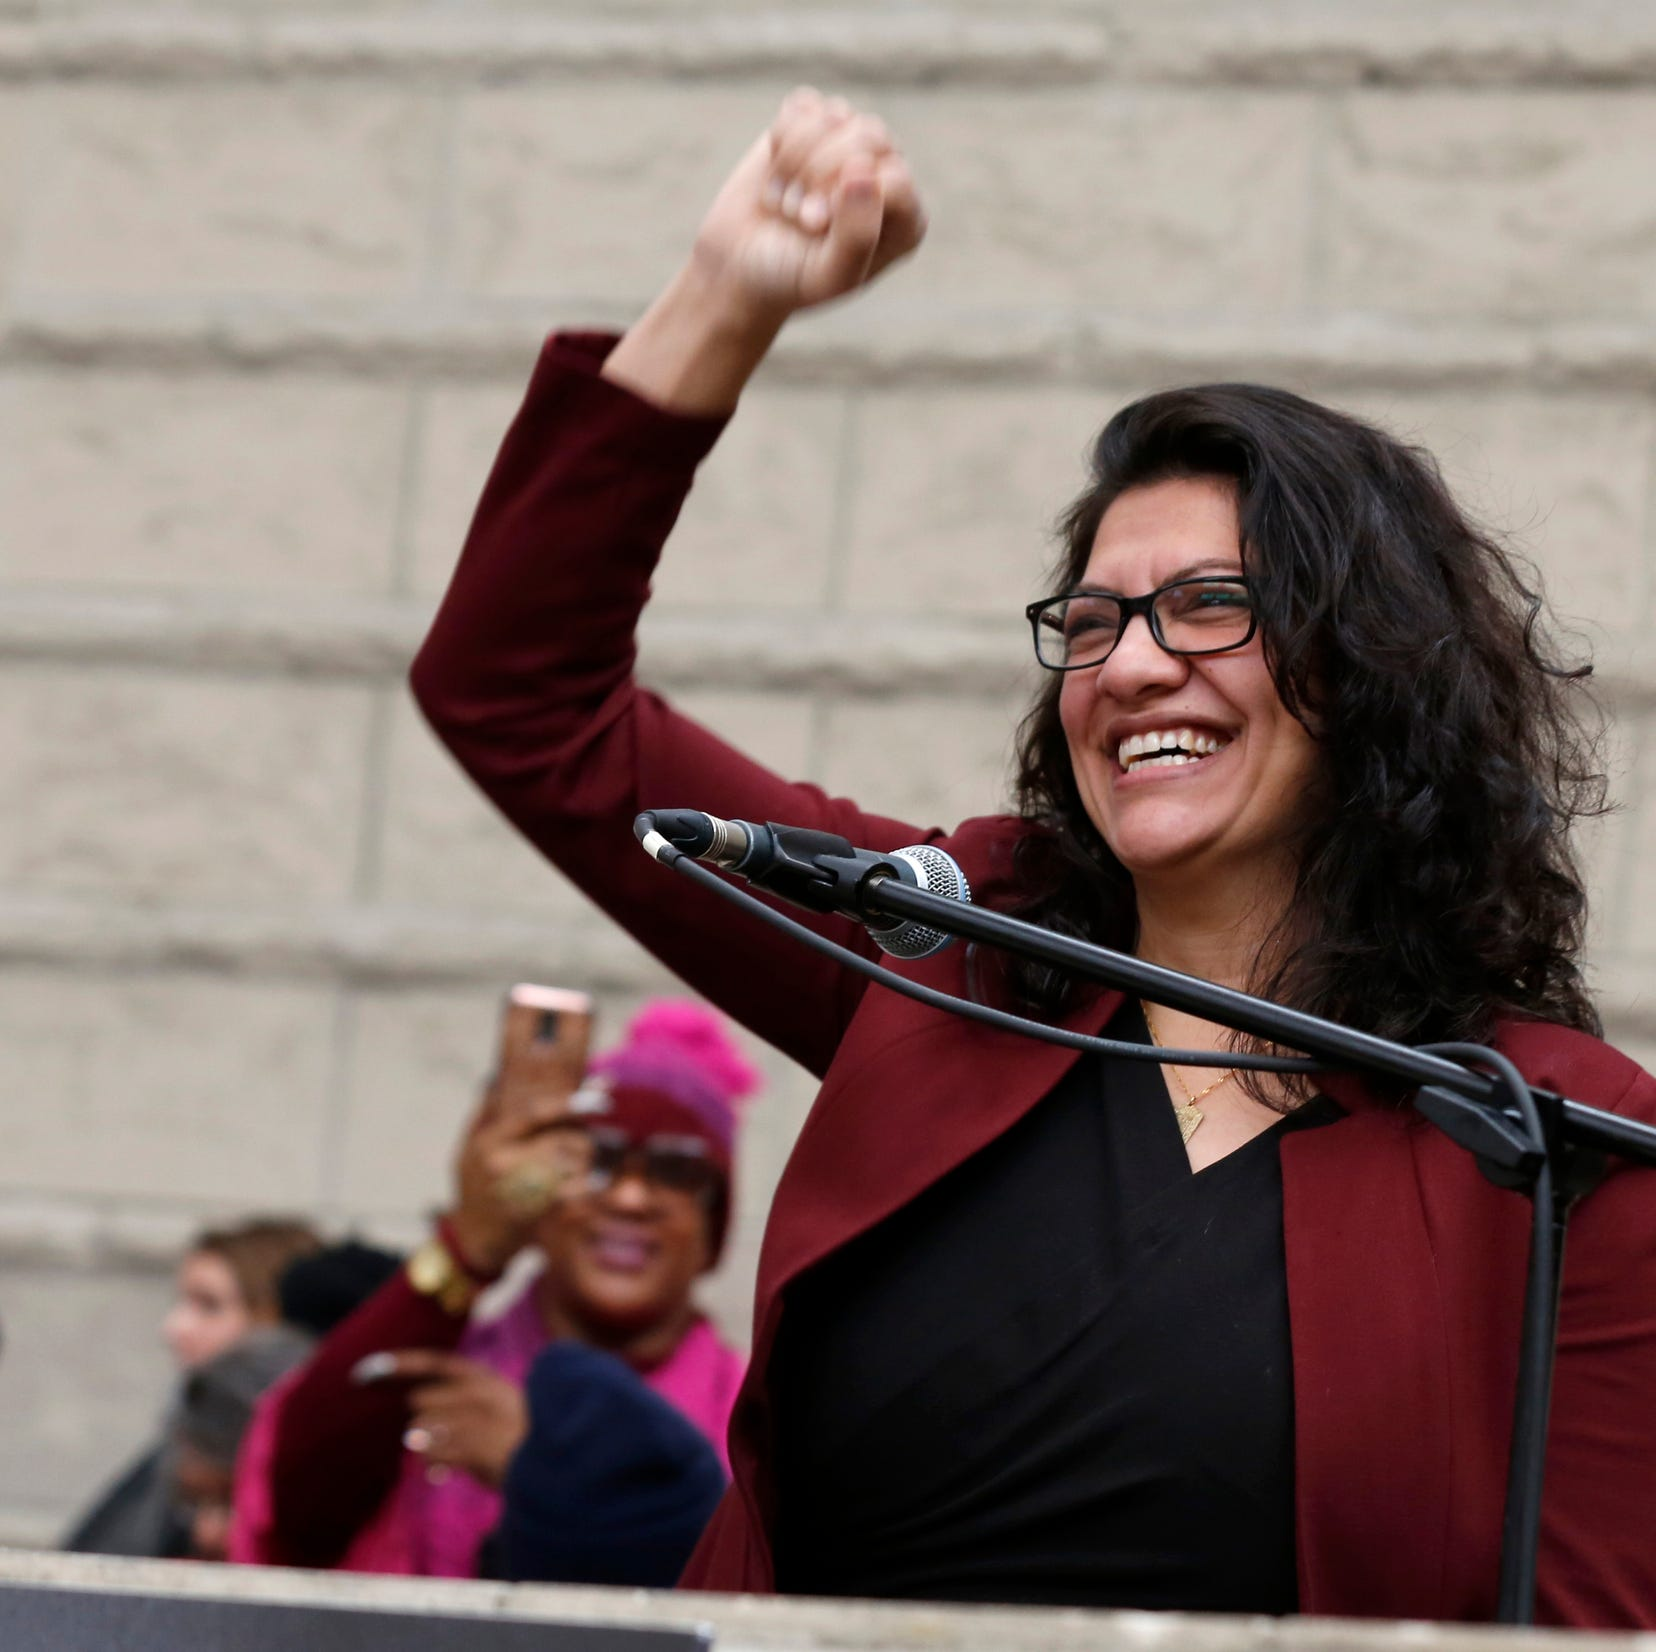 President Trump slams Rep. Rashida Tlaib for Holocaust comments